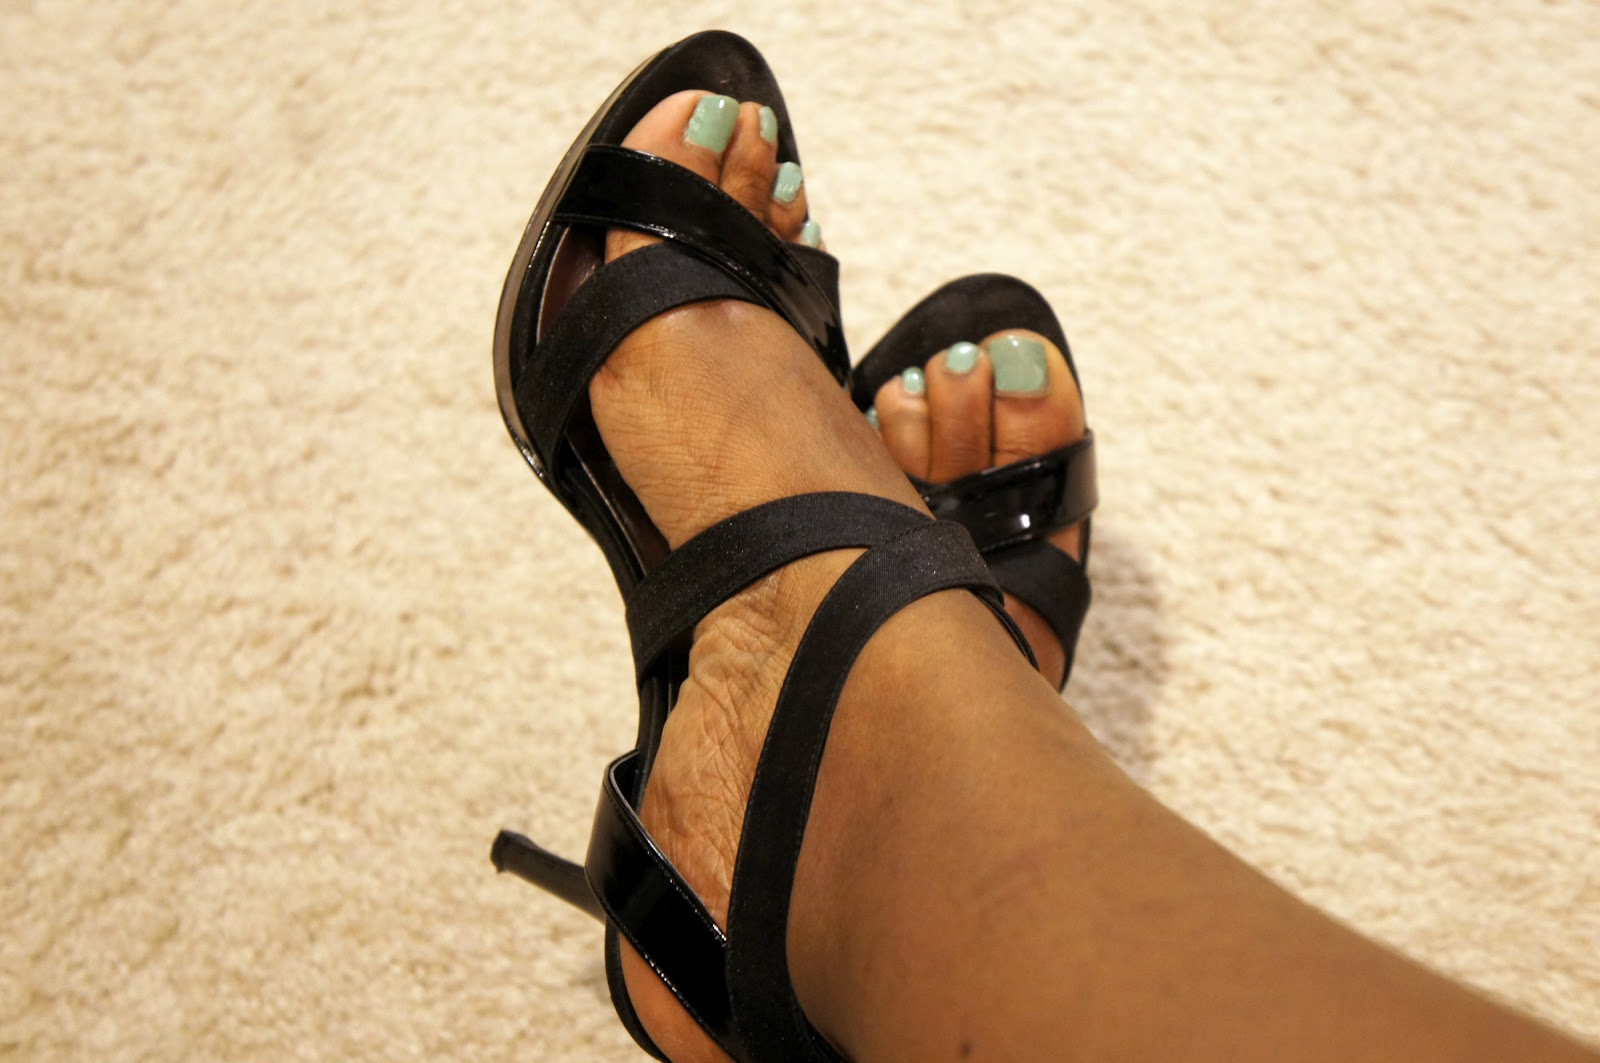 Feet ebony pics — photo 2